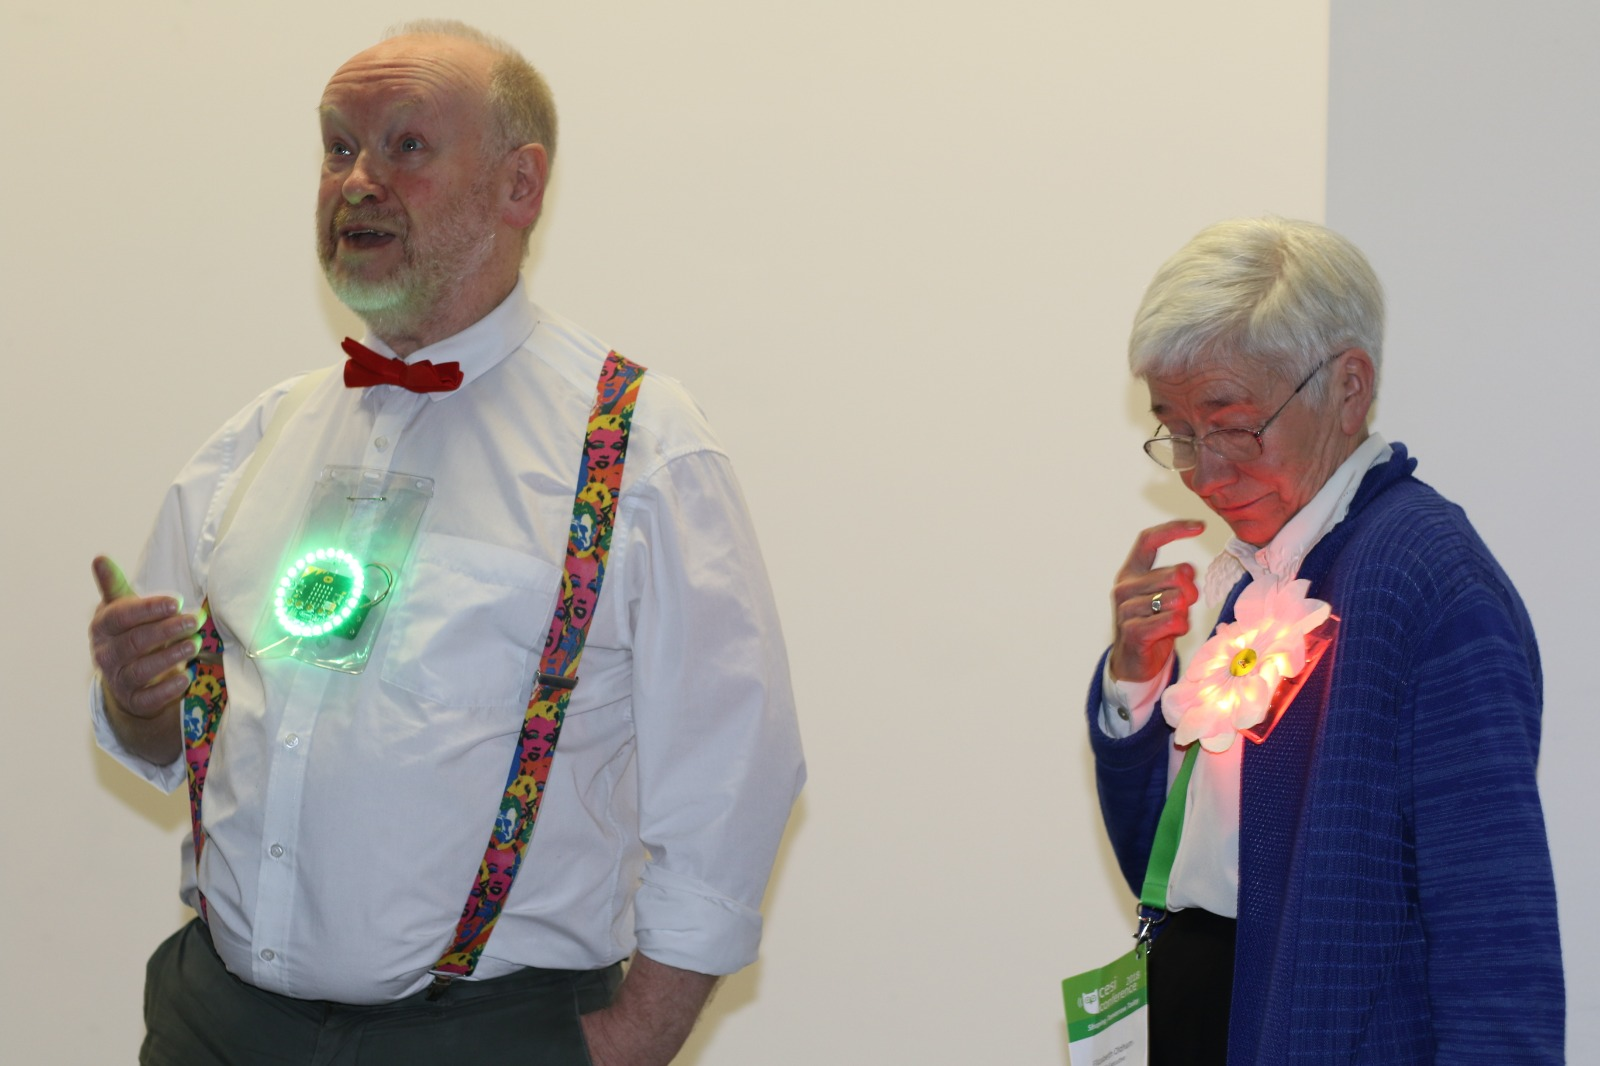 Richard Millwood and Elizabeth Oldham presenting at CESI conference 2018 with voting wearables